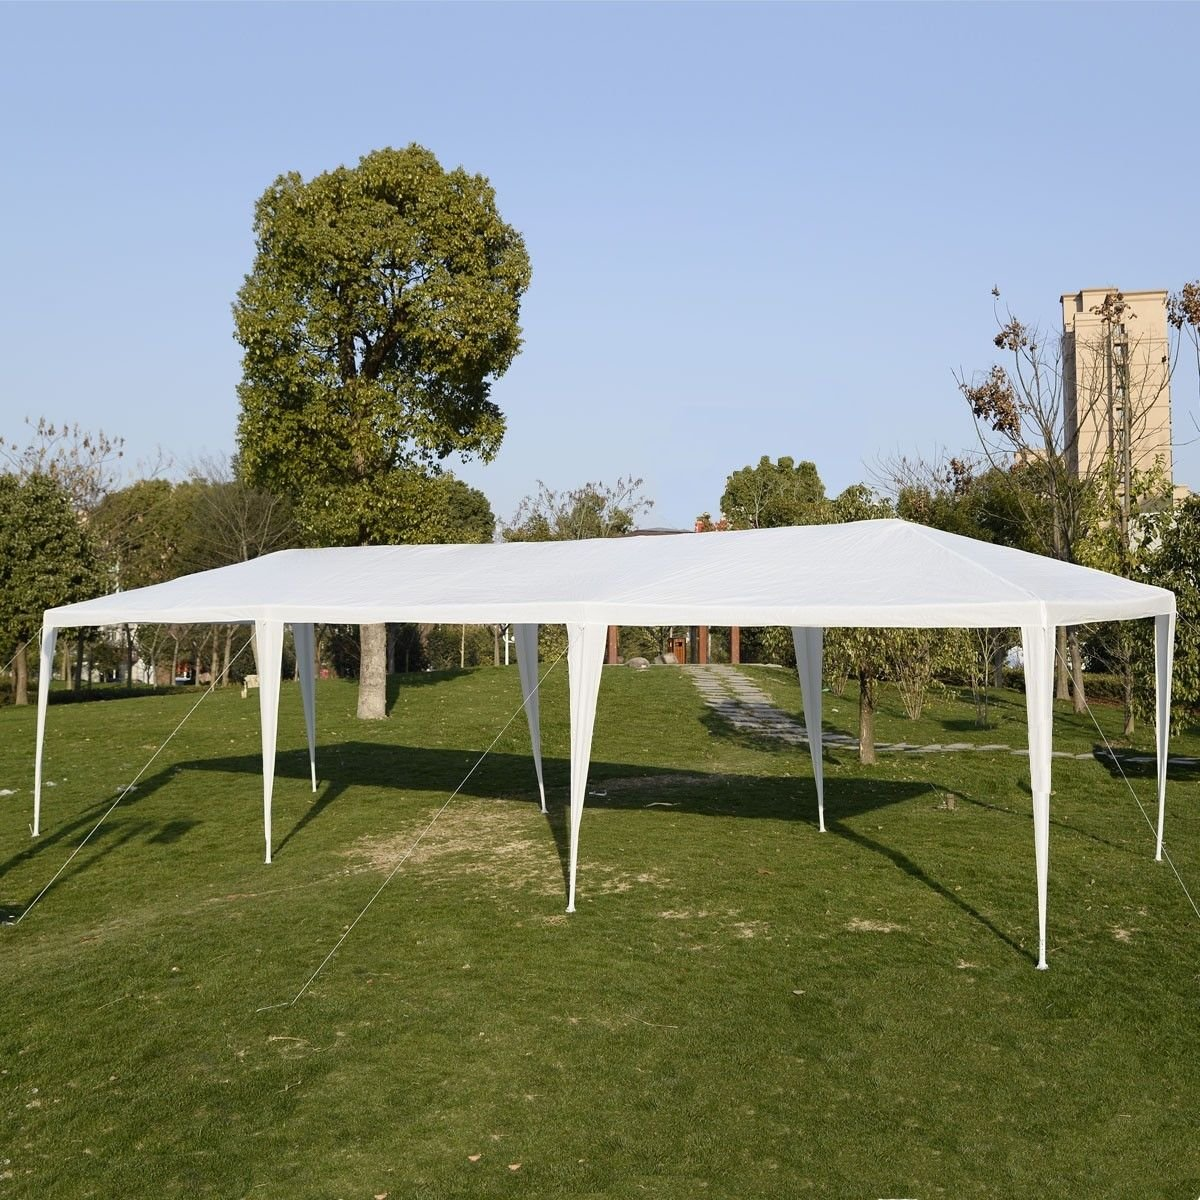 Amazon.com  Giantex 10u0027x30u0027Heavy duty Gazebo Canopy Outdoor Party Wedding Tent  Sports u0026 Outdoors & Amazon.com : Giantex 10u0027x30u0027Heavy duty Gazebo Canopy Outdoor Party ...